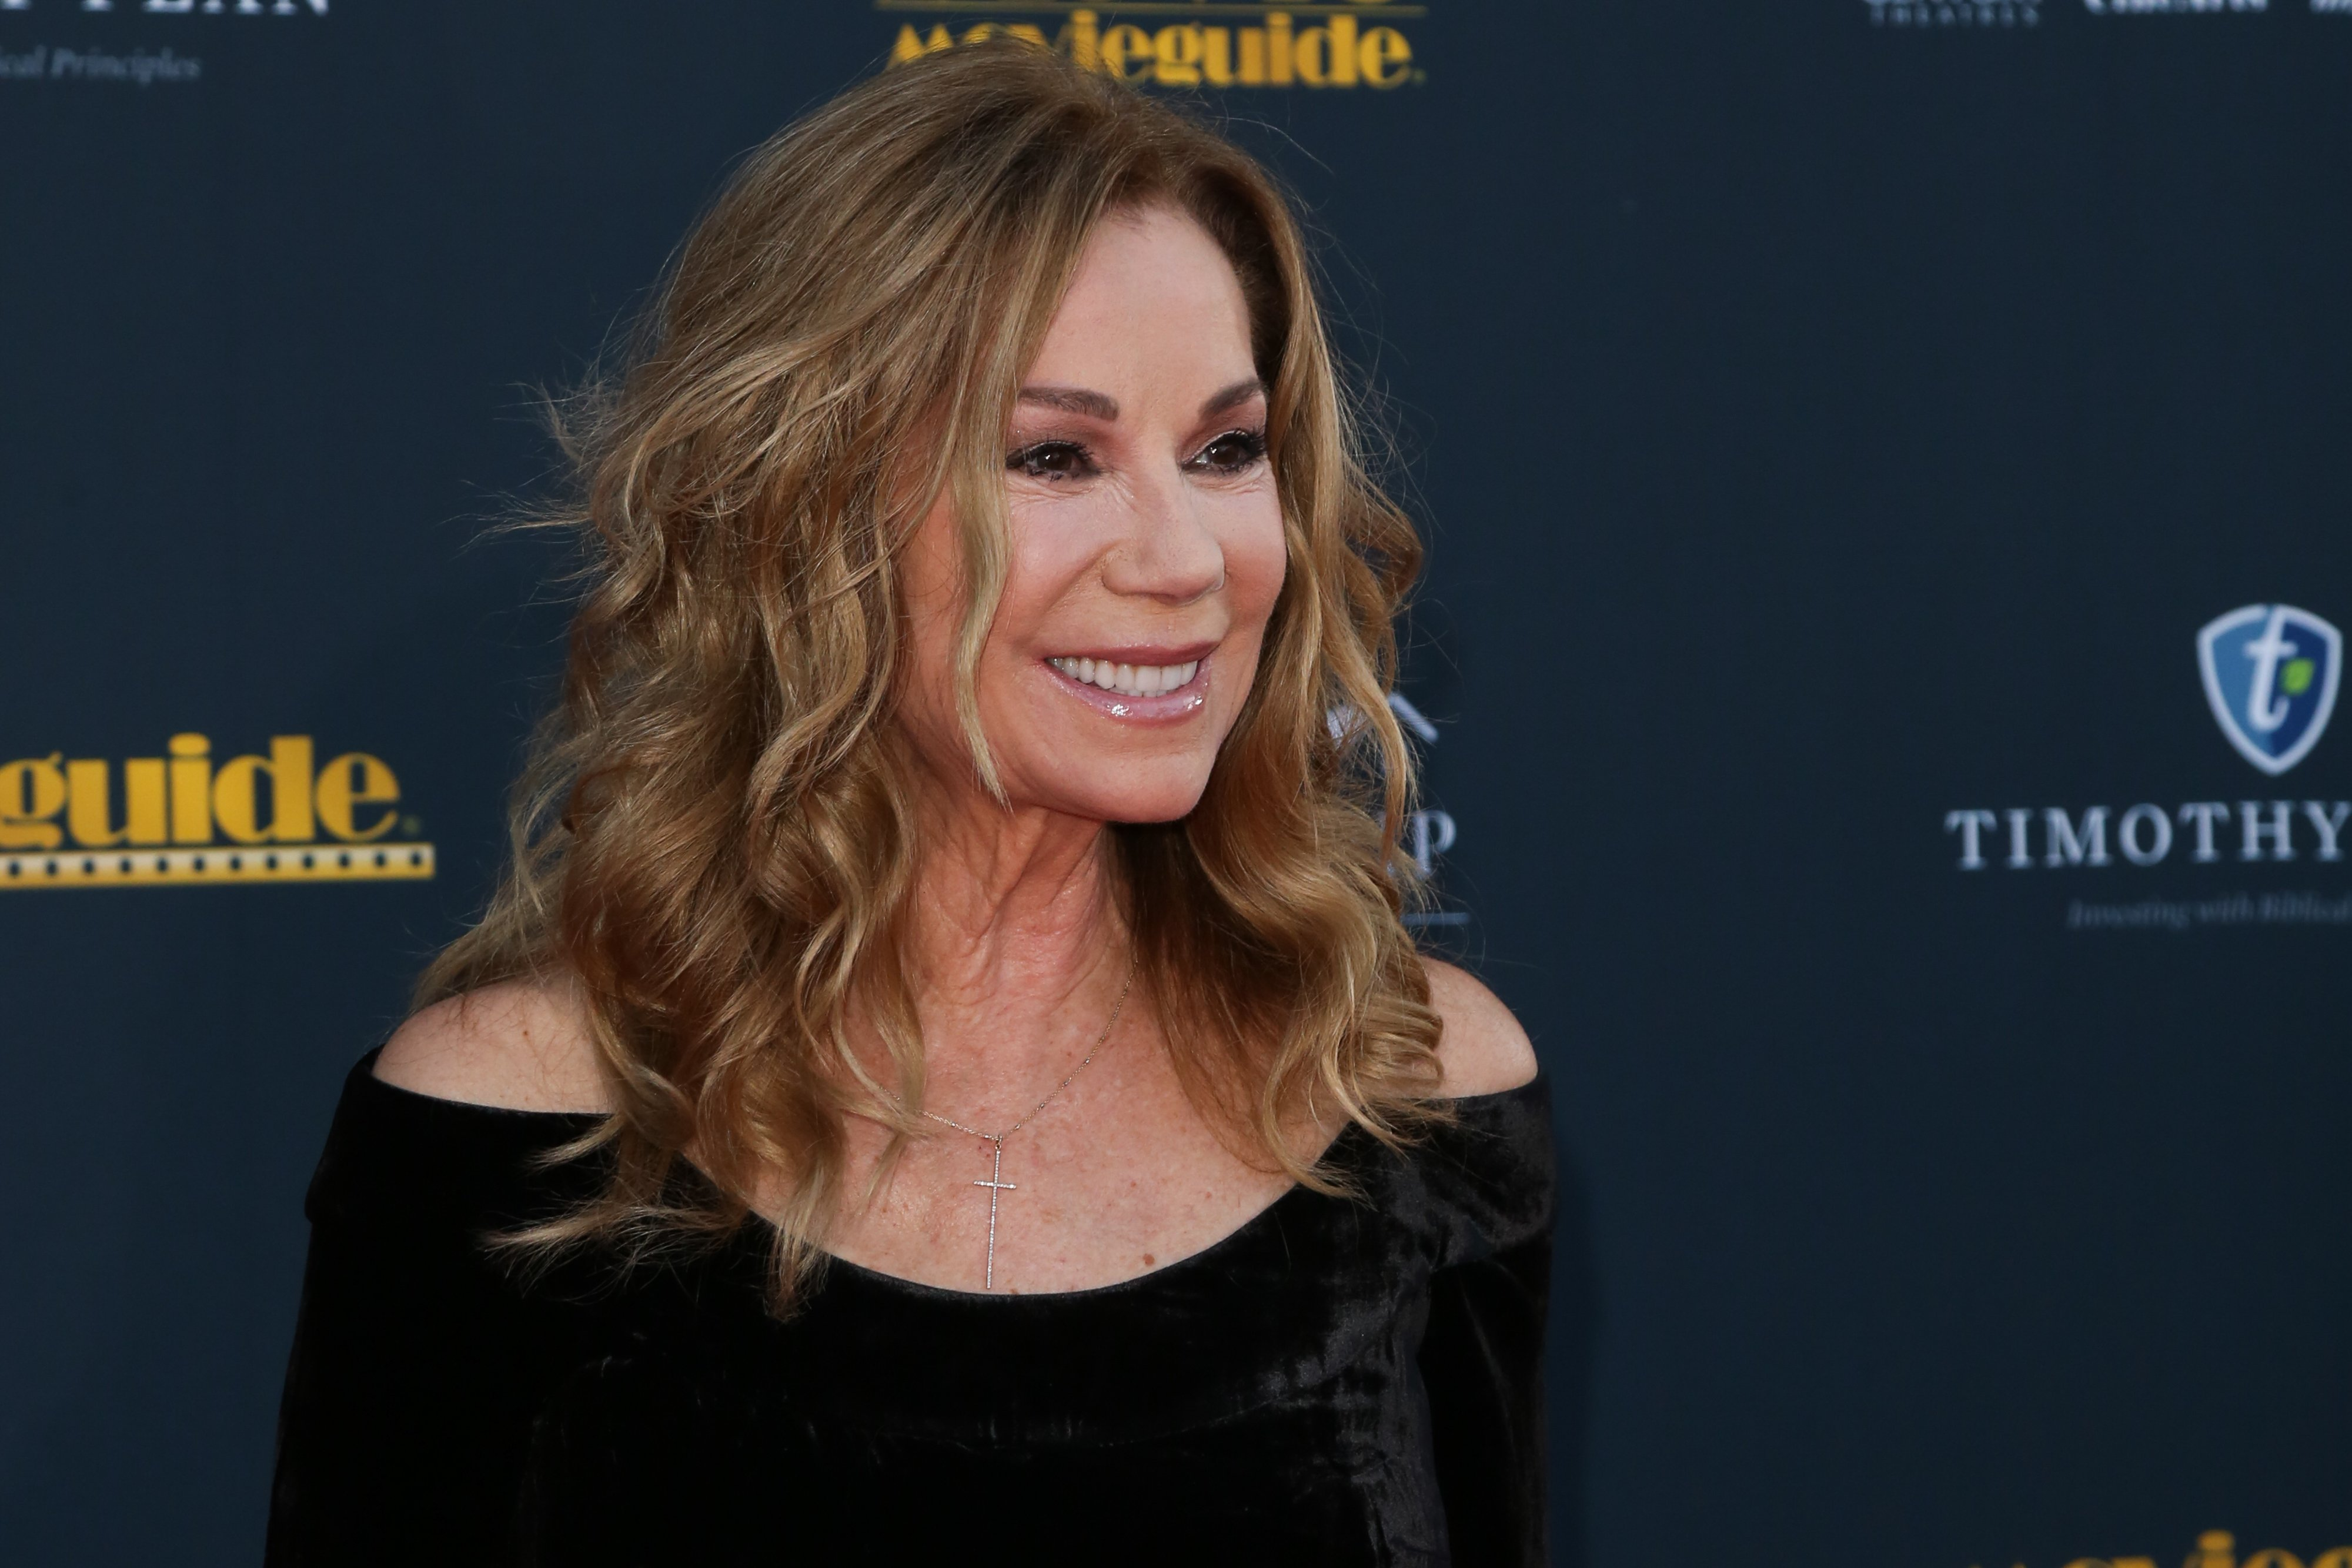 Kathie Lee Gifford attends the Movieguide Awards Gala in Los Angeles, California on January 24, 2020 | Photo: Getty Images